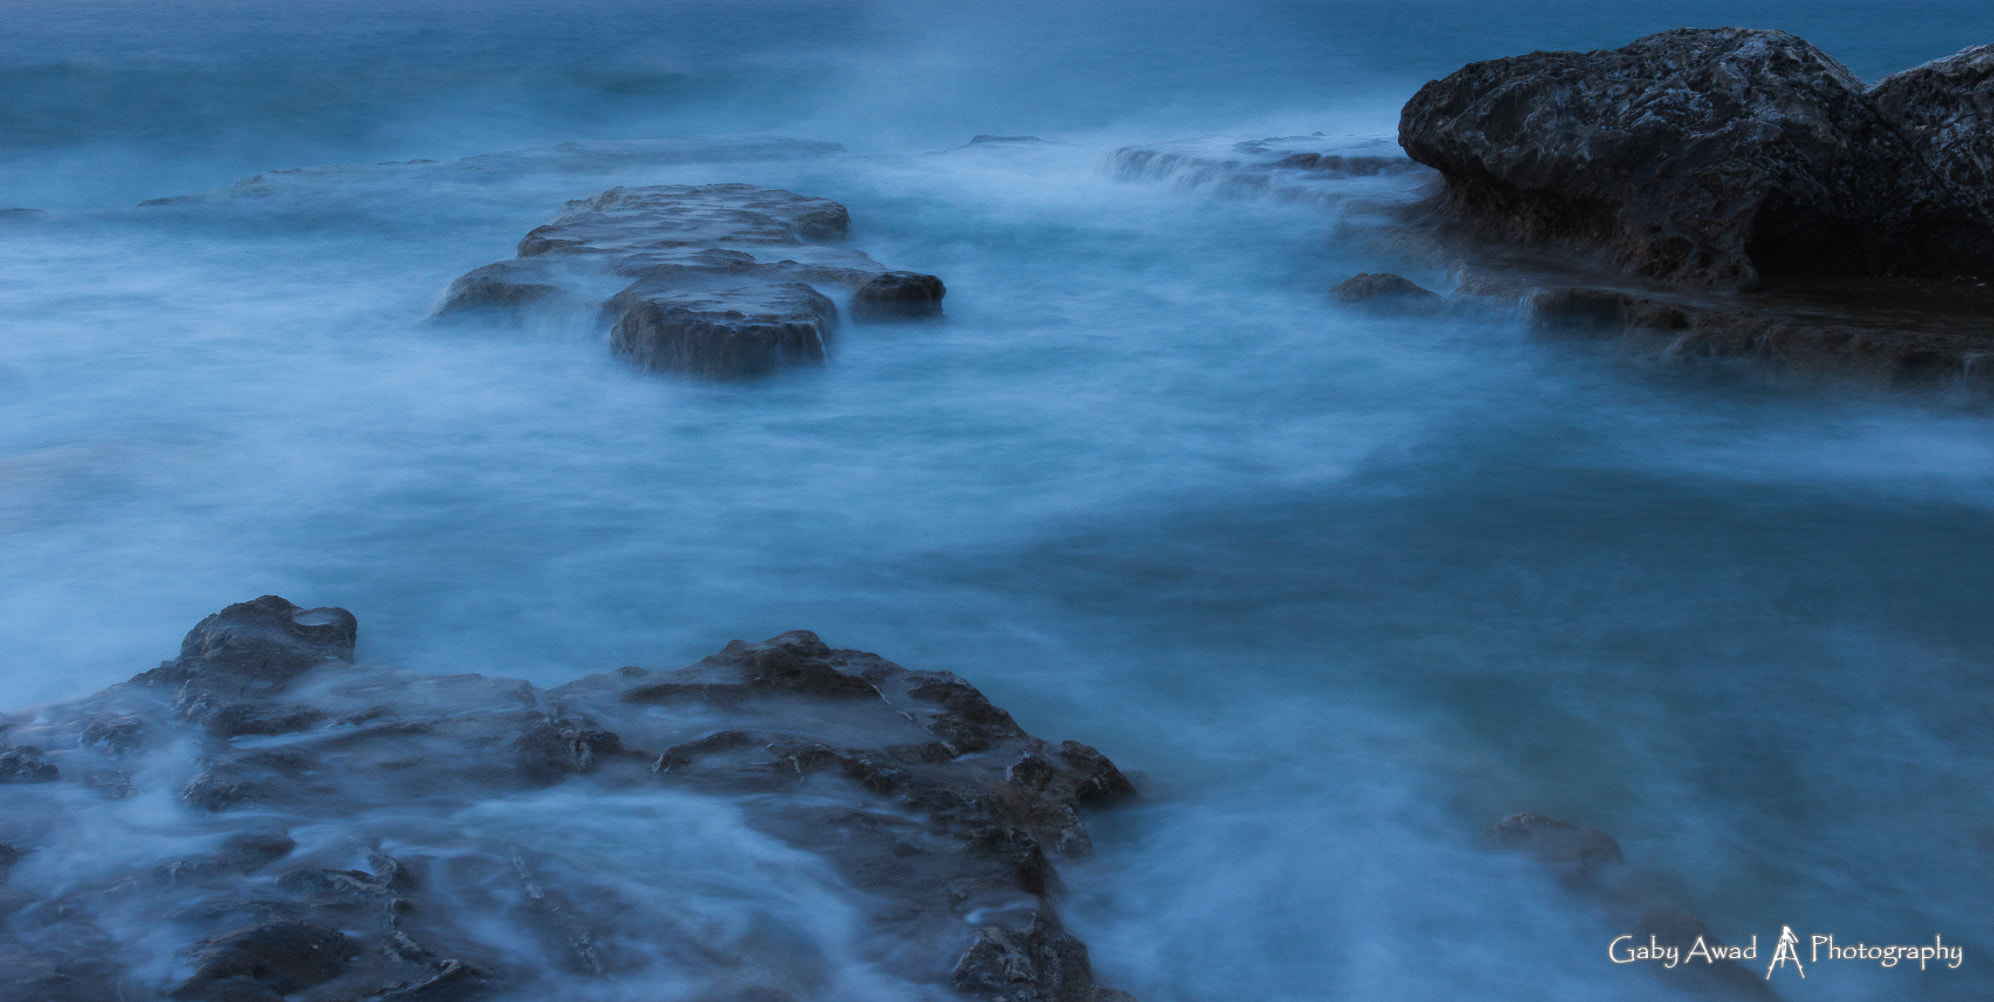 Photograph Silky waves 1 by Gaby Awad on 500px